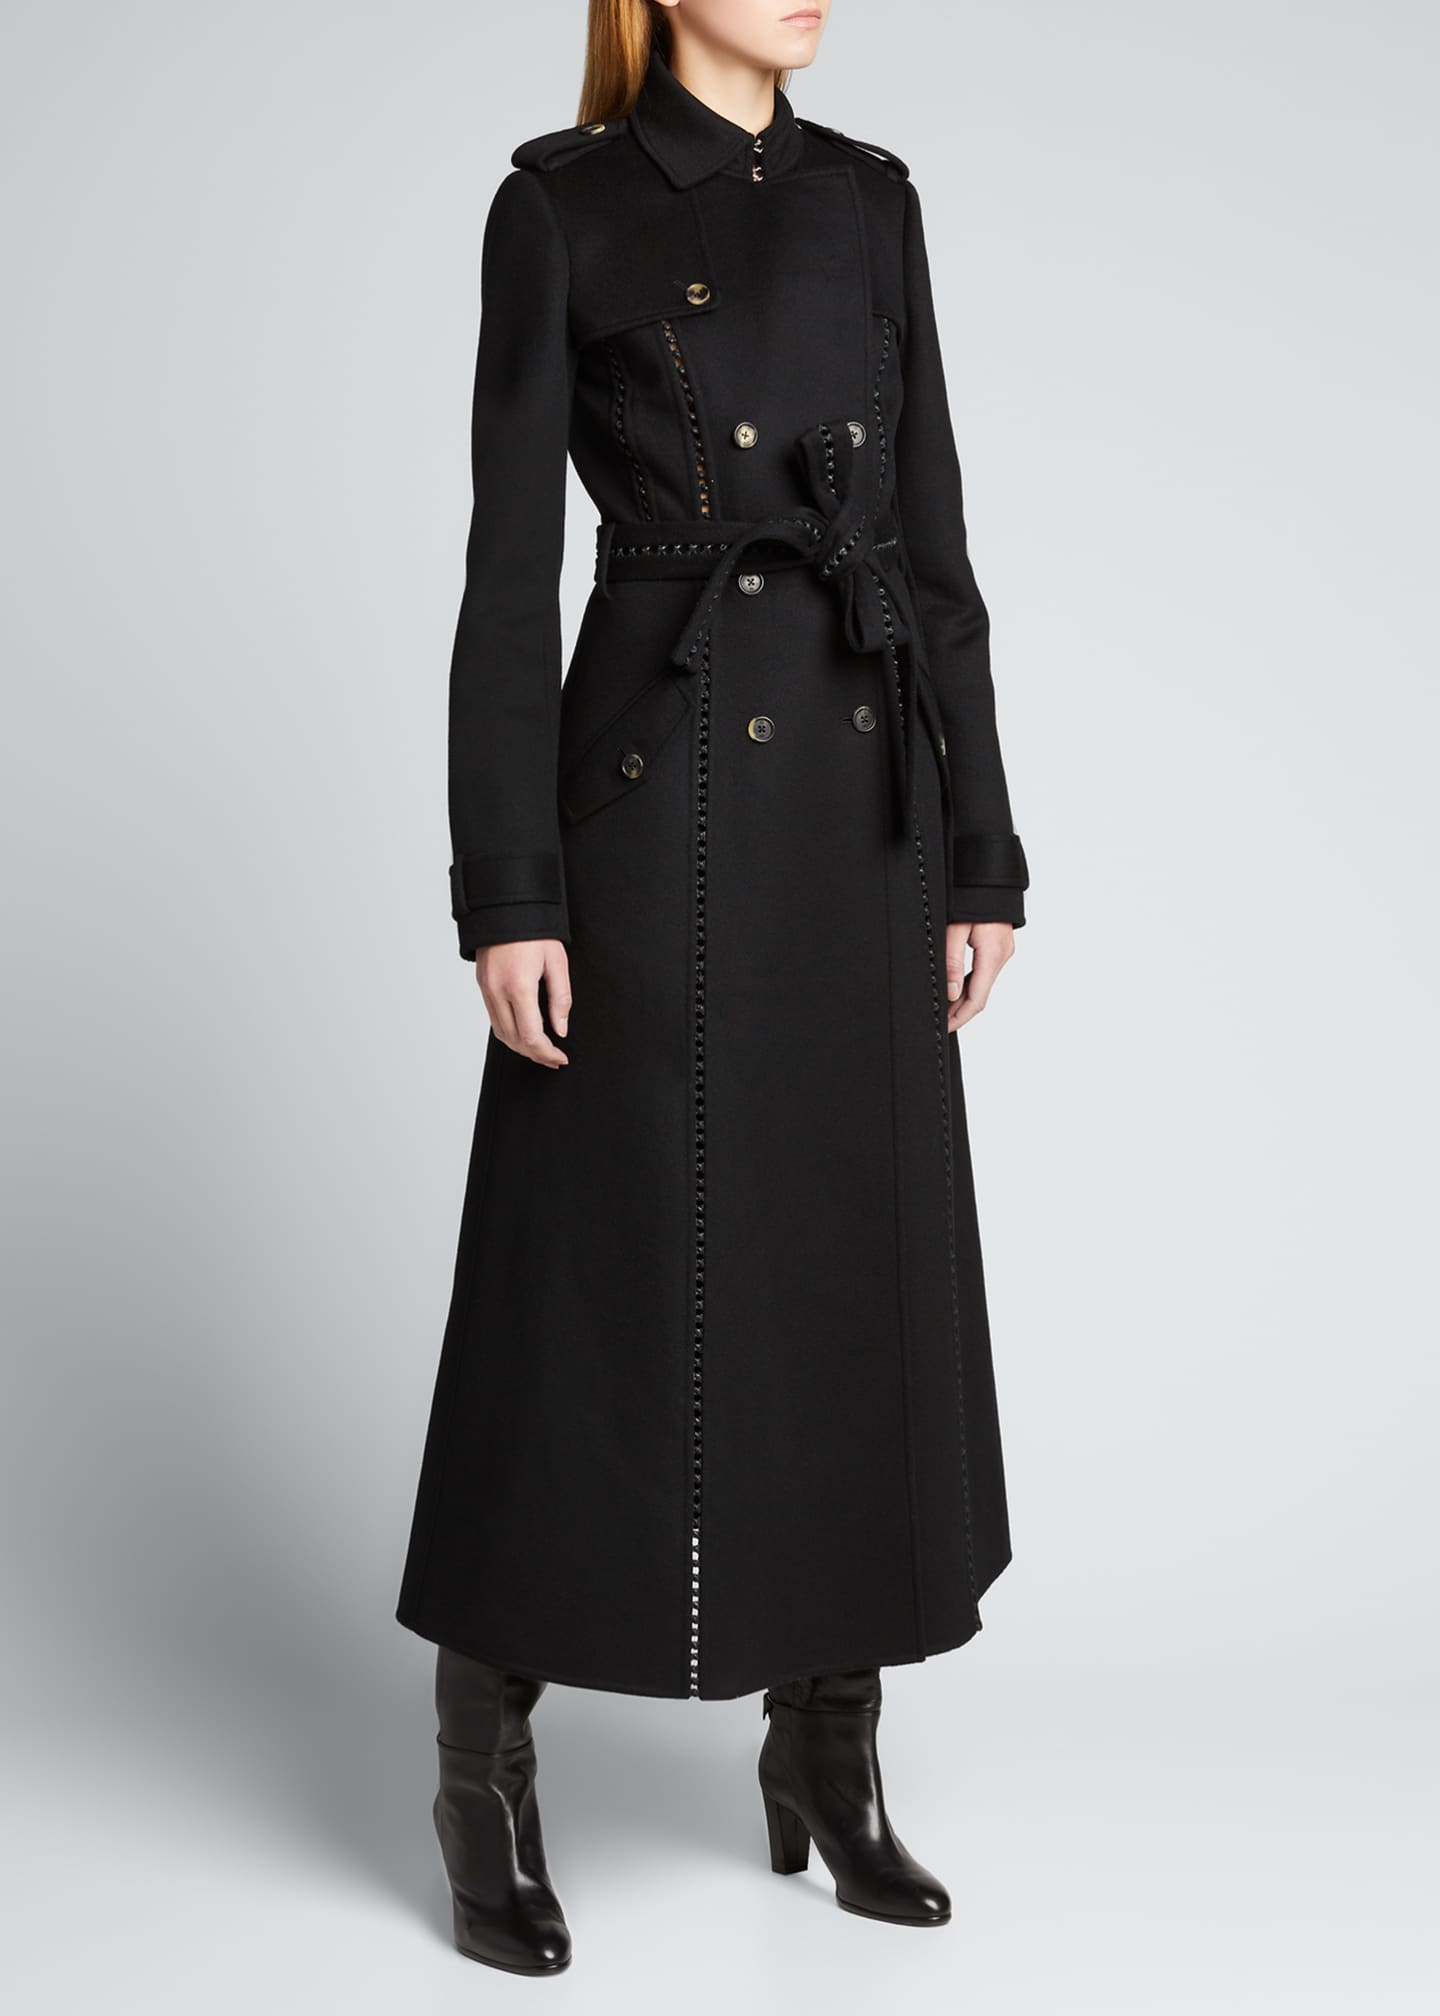 Image 1 of 5: Franz Knotted Cashmere Lace-Up Trench Coat